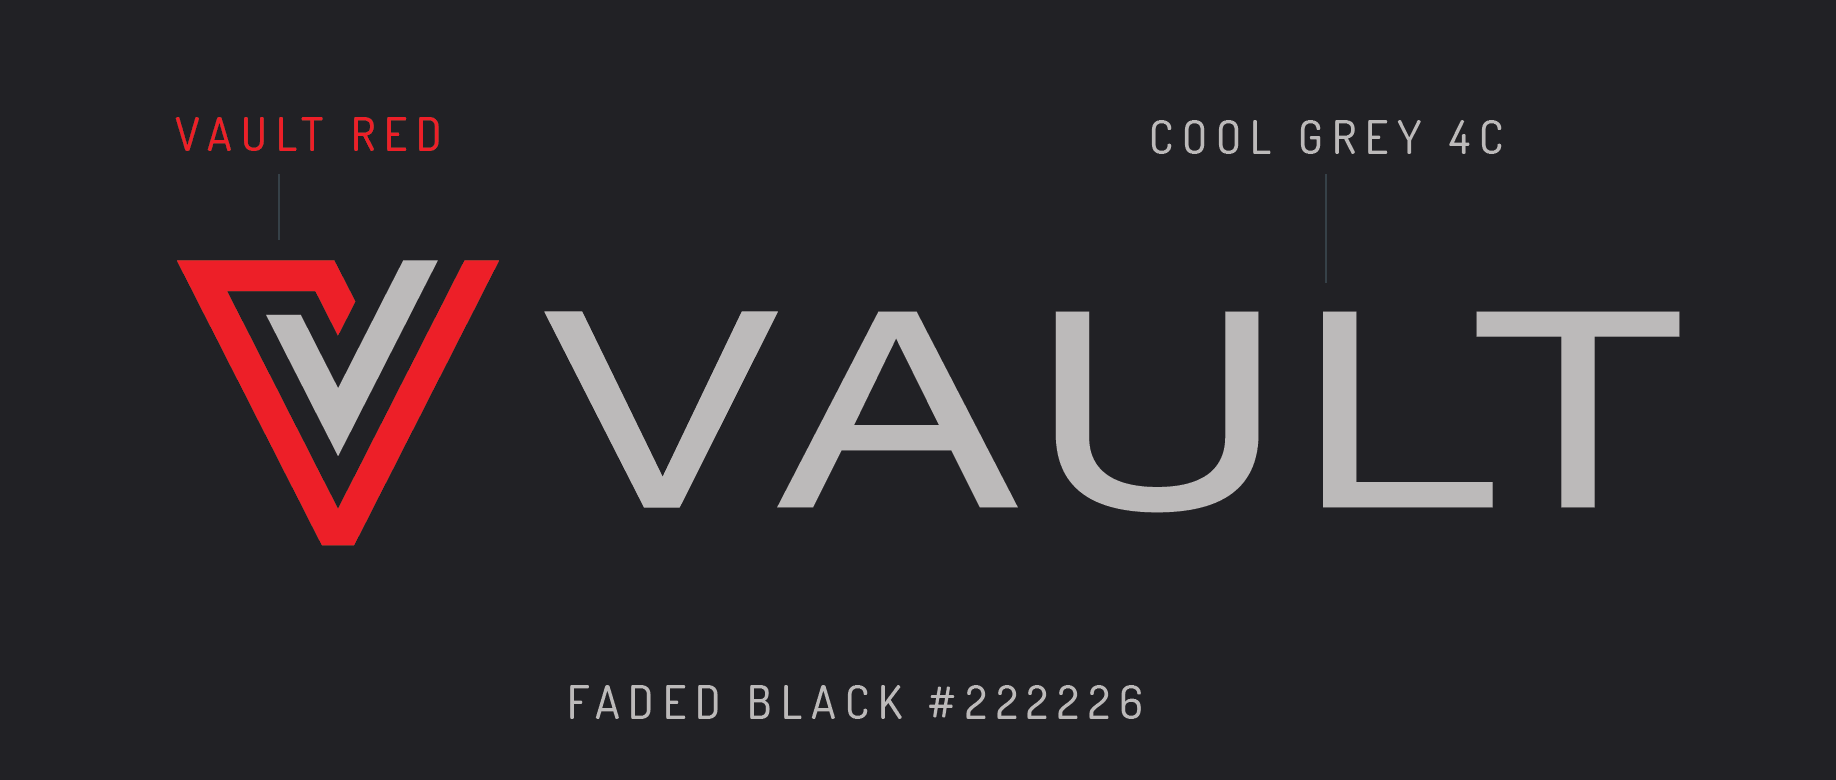 Vault logo colors on faded black background